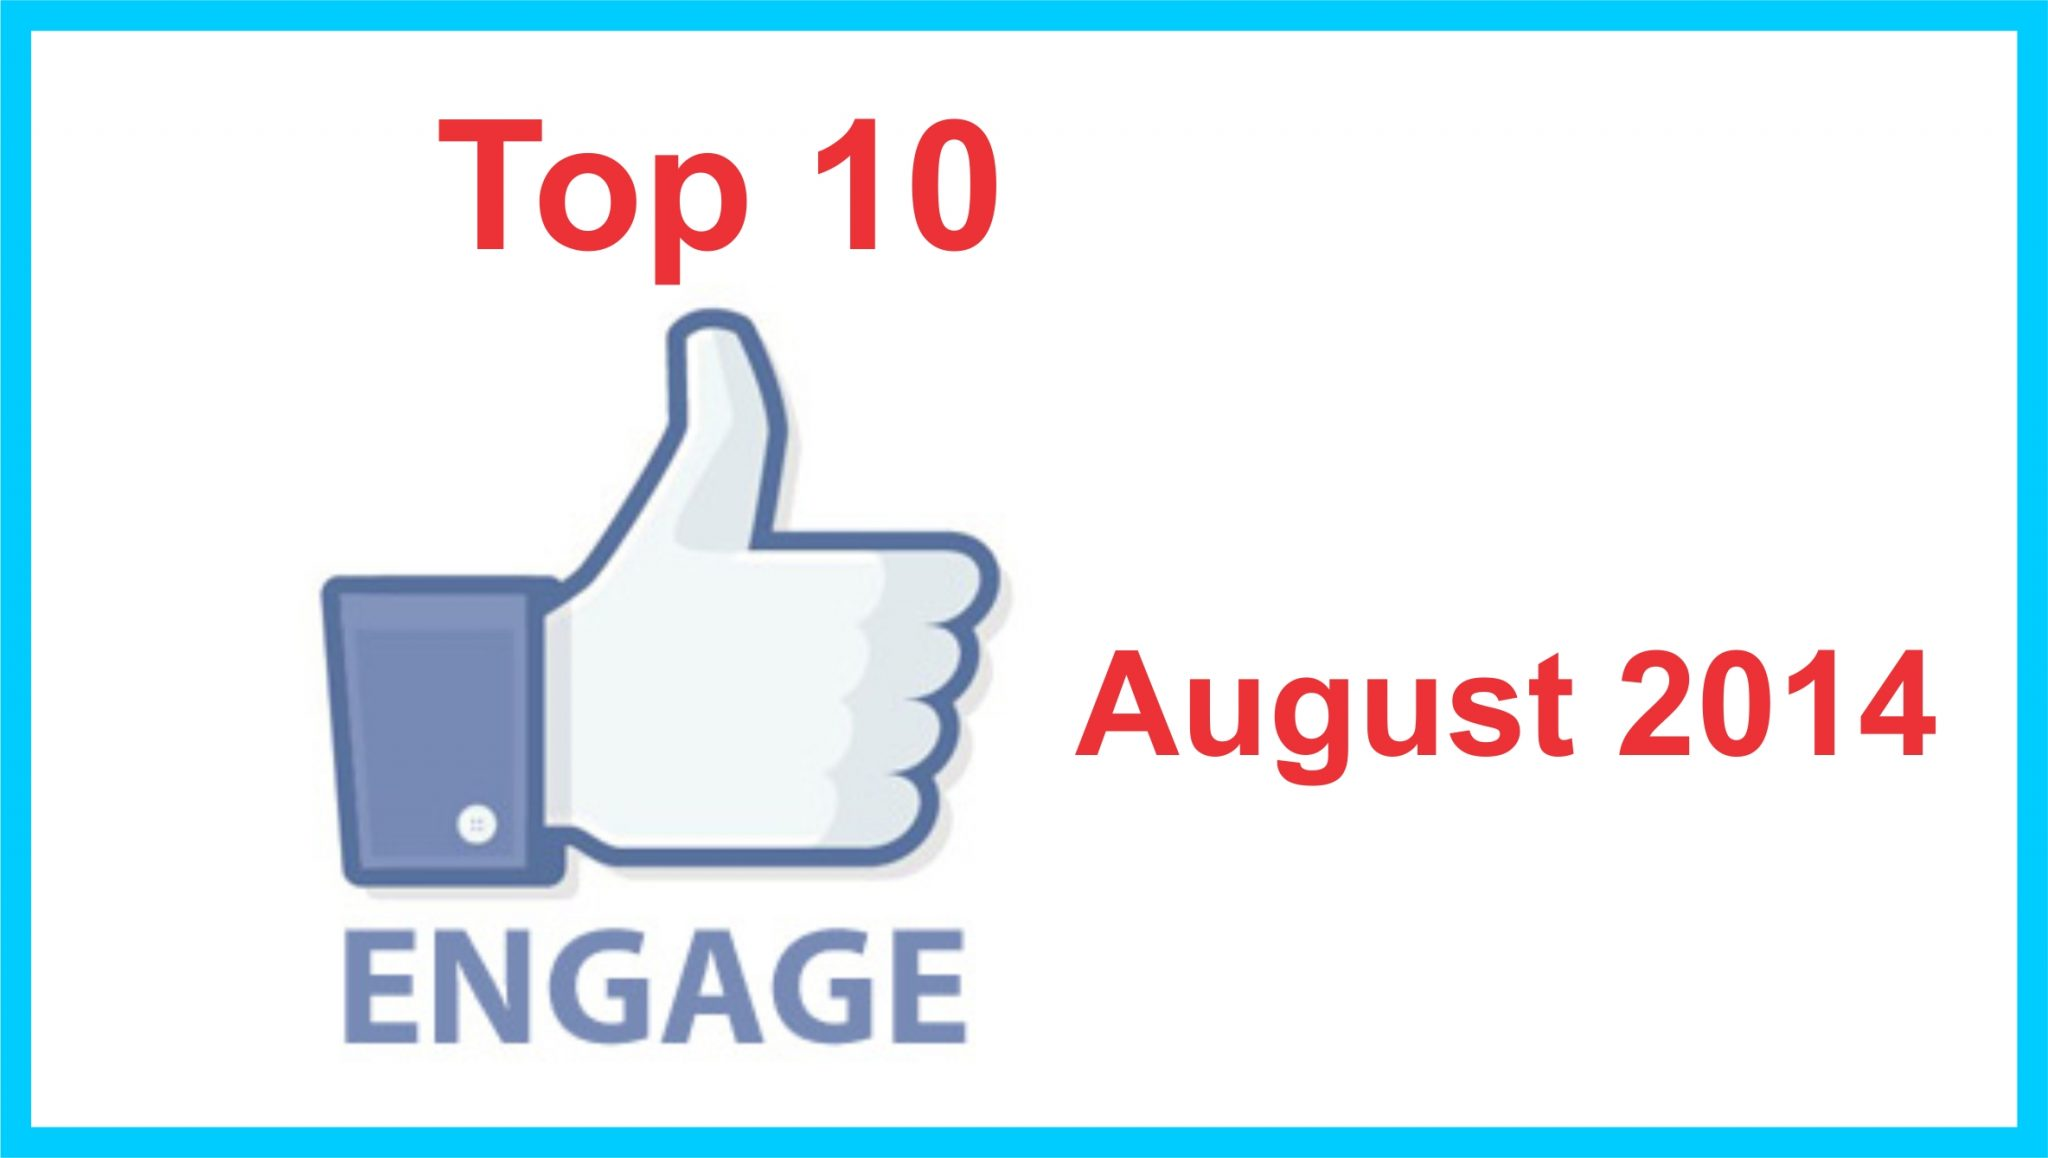 Top 10 august 2014 FB